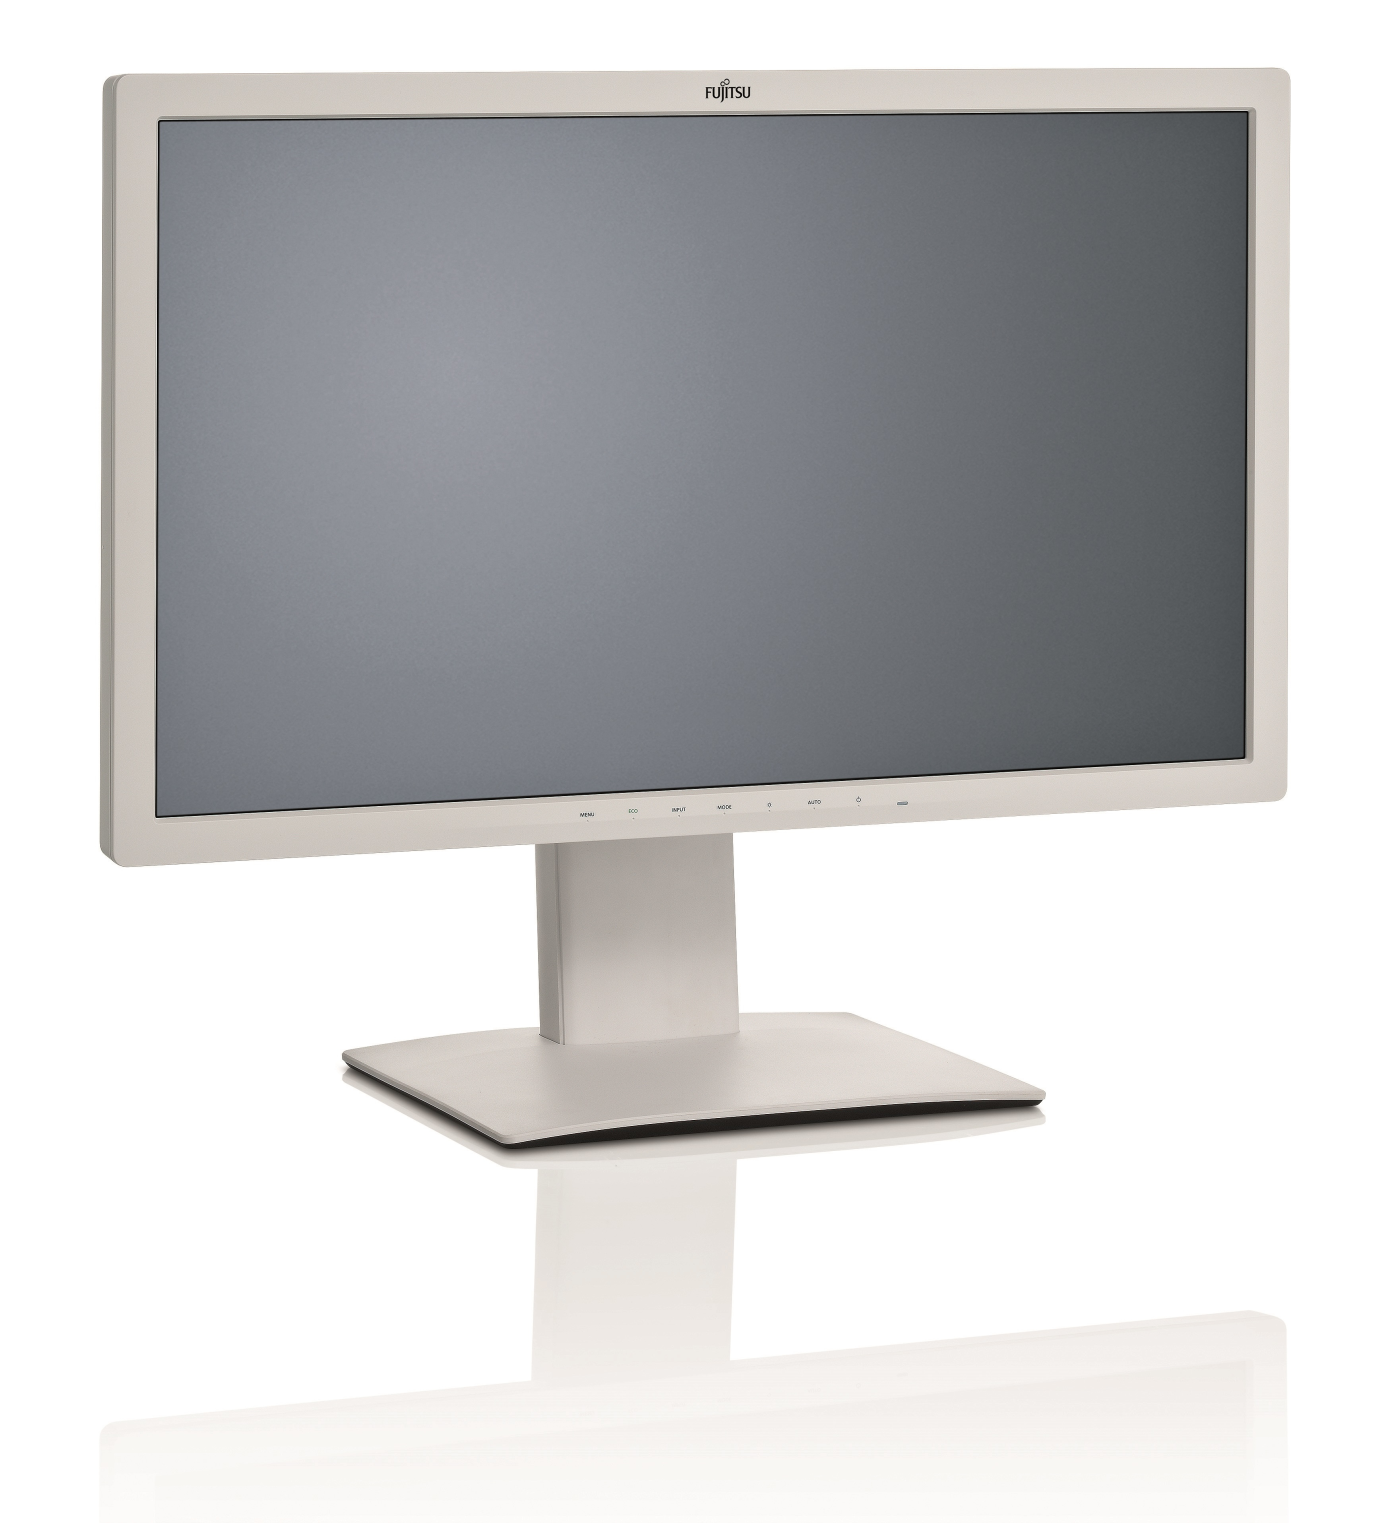 Fujitsu 27´´ B27T-7 IPS 1920 x 1080/20M:1/5ms/250cd/DP/DVI/4xUSB/4 in 1 stand/repro